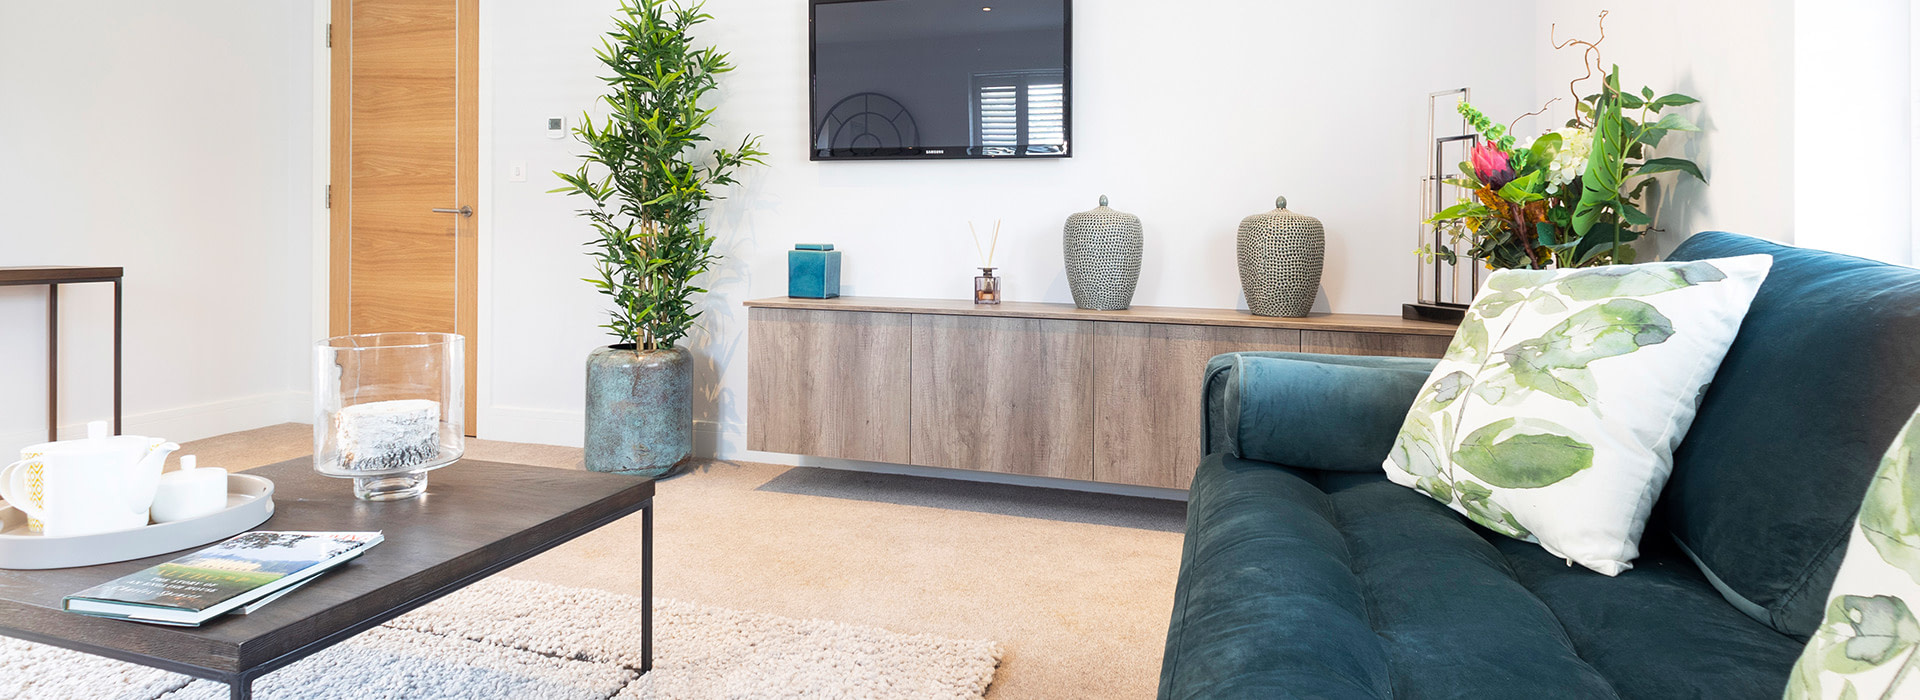 Modern interior with plants